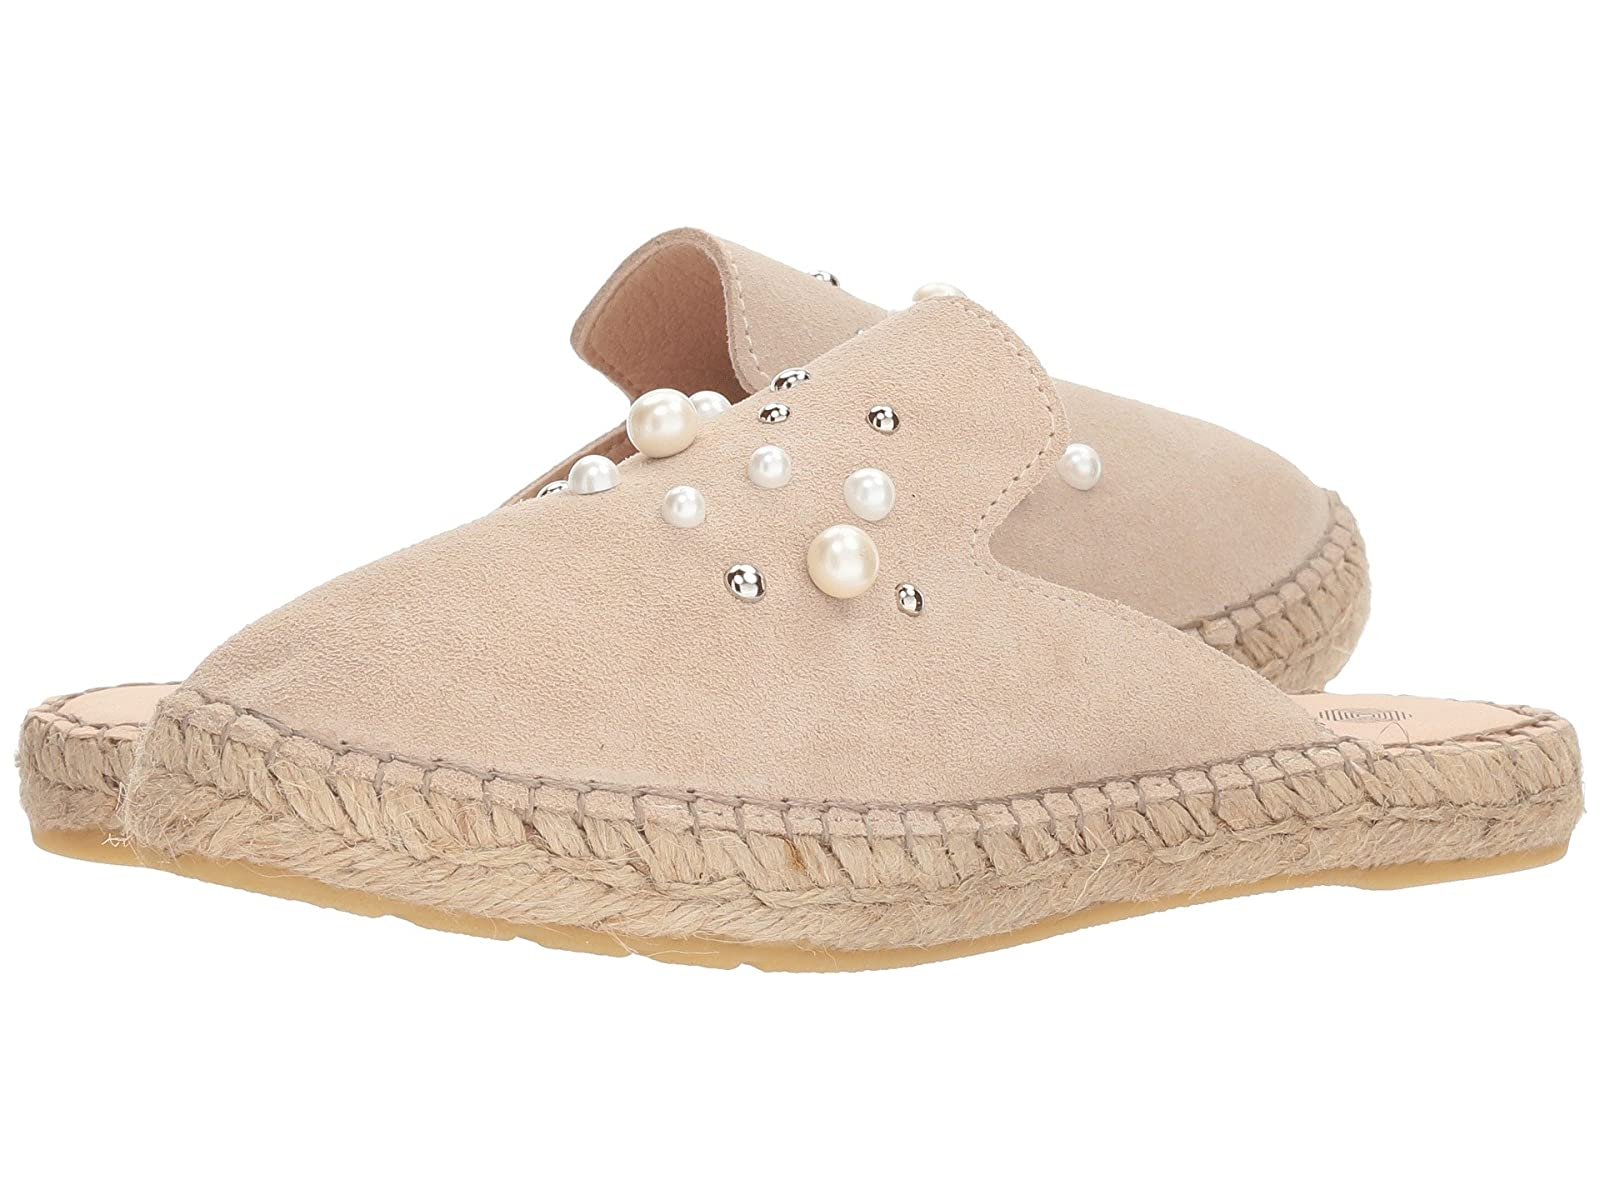 Eric Michael KellyAtmospheric grades have affordable shoes